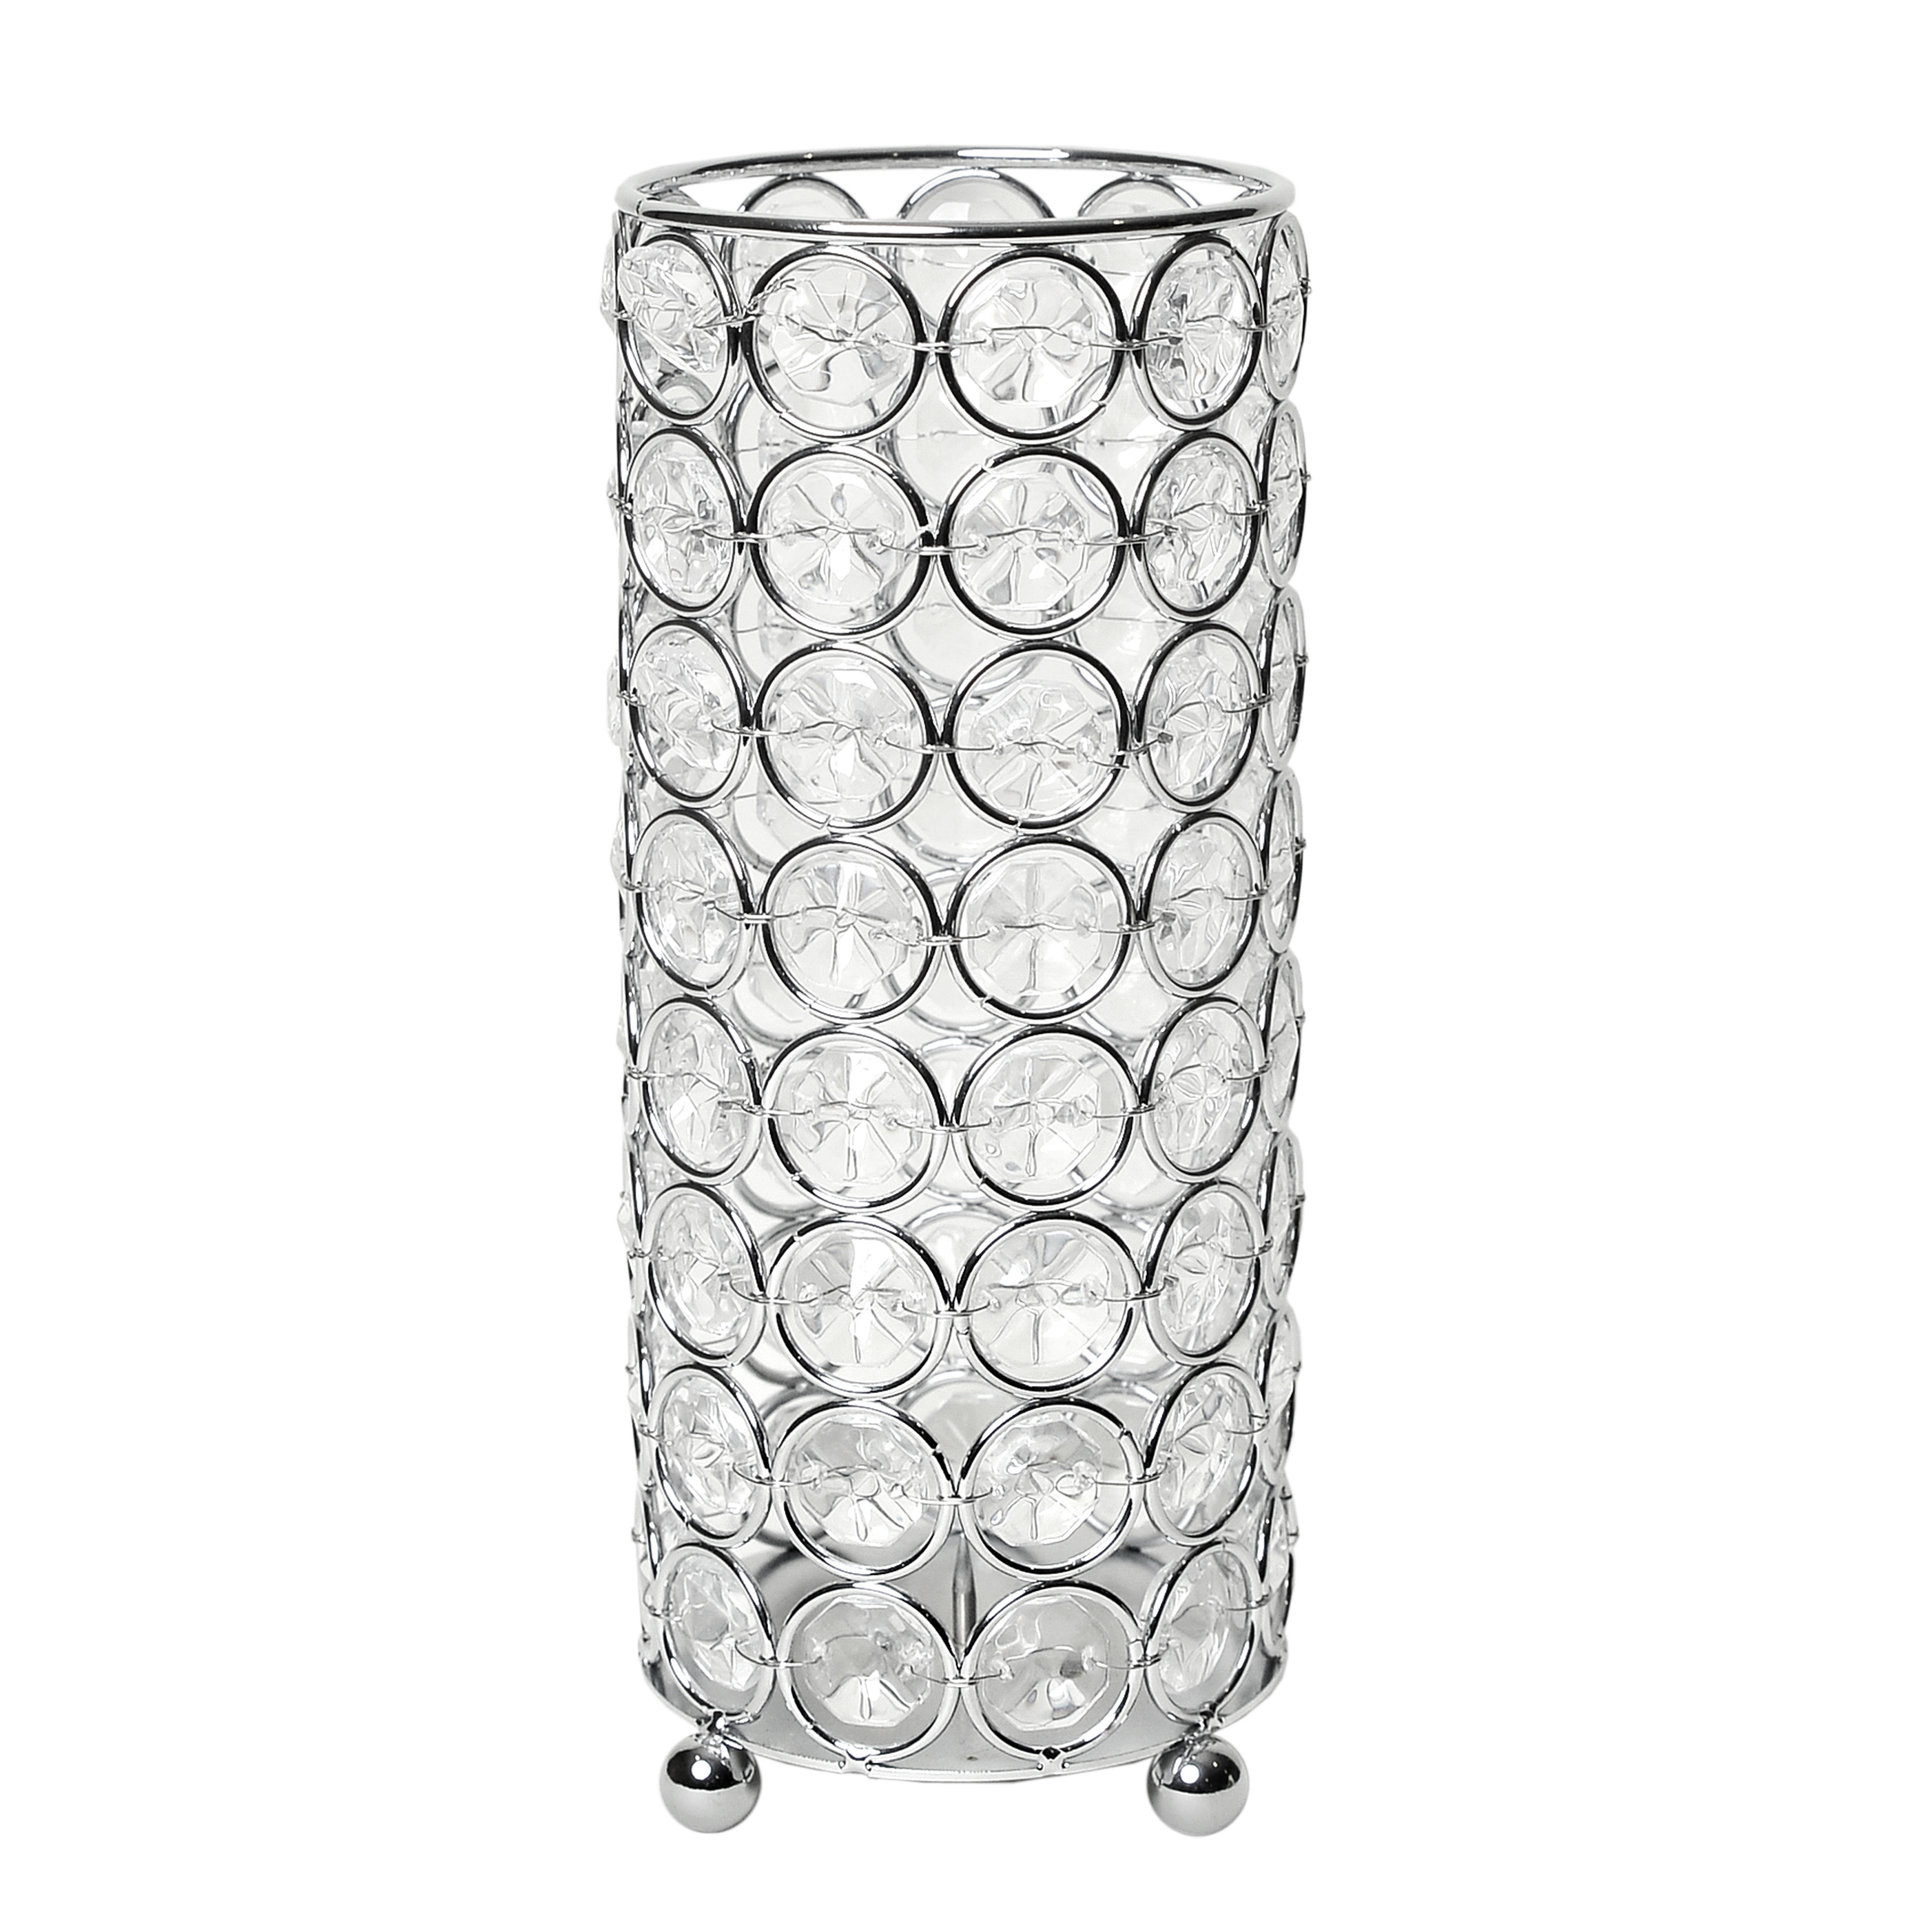 Elegant Designs Elipse Crystal Decorative Flower Vase, Candle Holder, Wedding Centerpiece, 7.75 Inch, Chrome